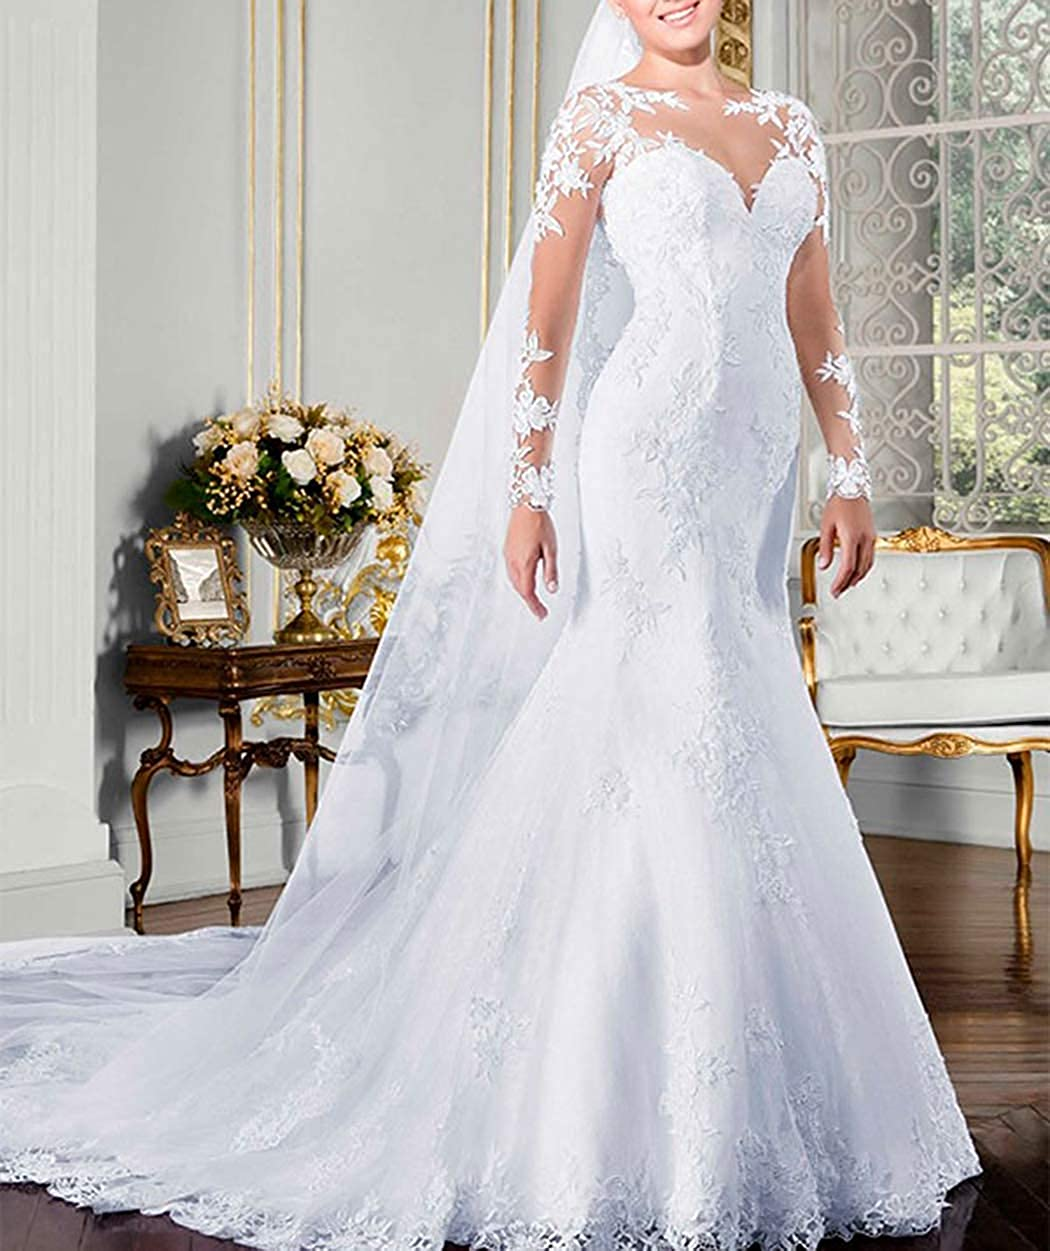 Womens Mermaid Lace Wedding Dresses with Long Sleeve Illusion Back Bridal Gowns